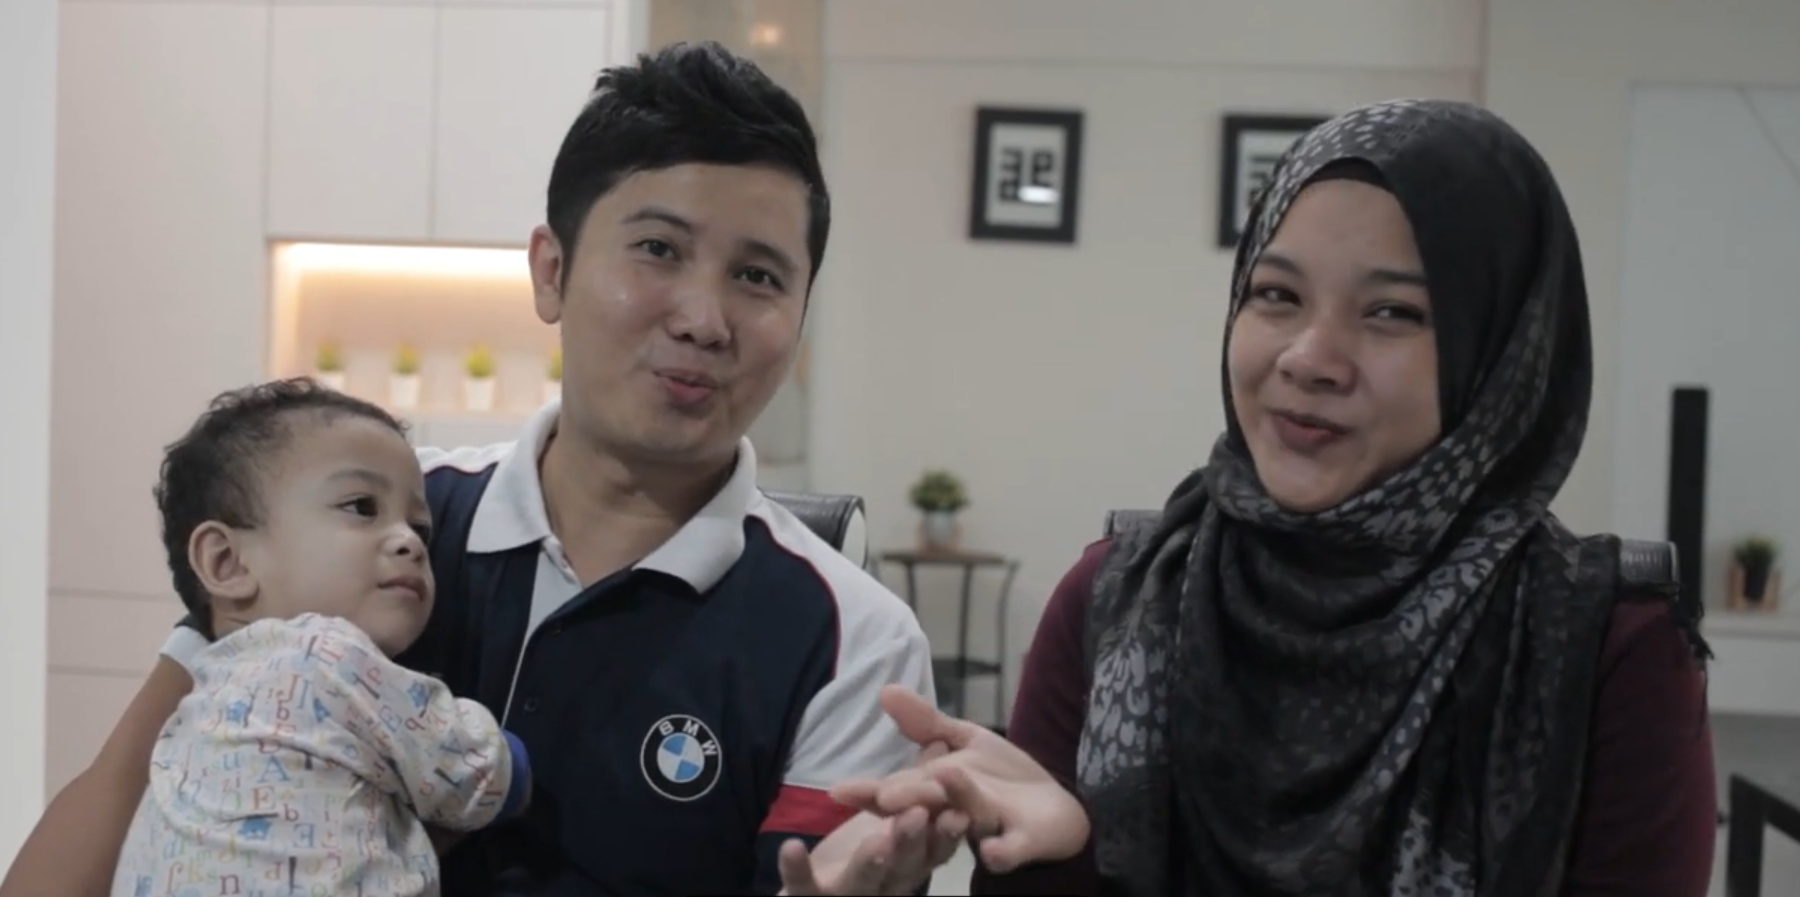 Renovation Singapore | Chit chat with Aziz & Sarah! (Dream Home Concepts)